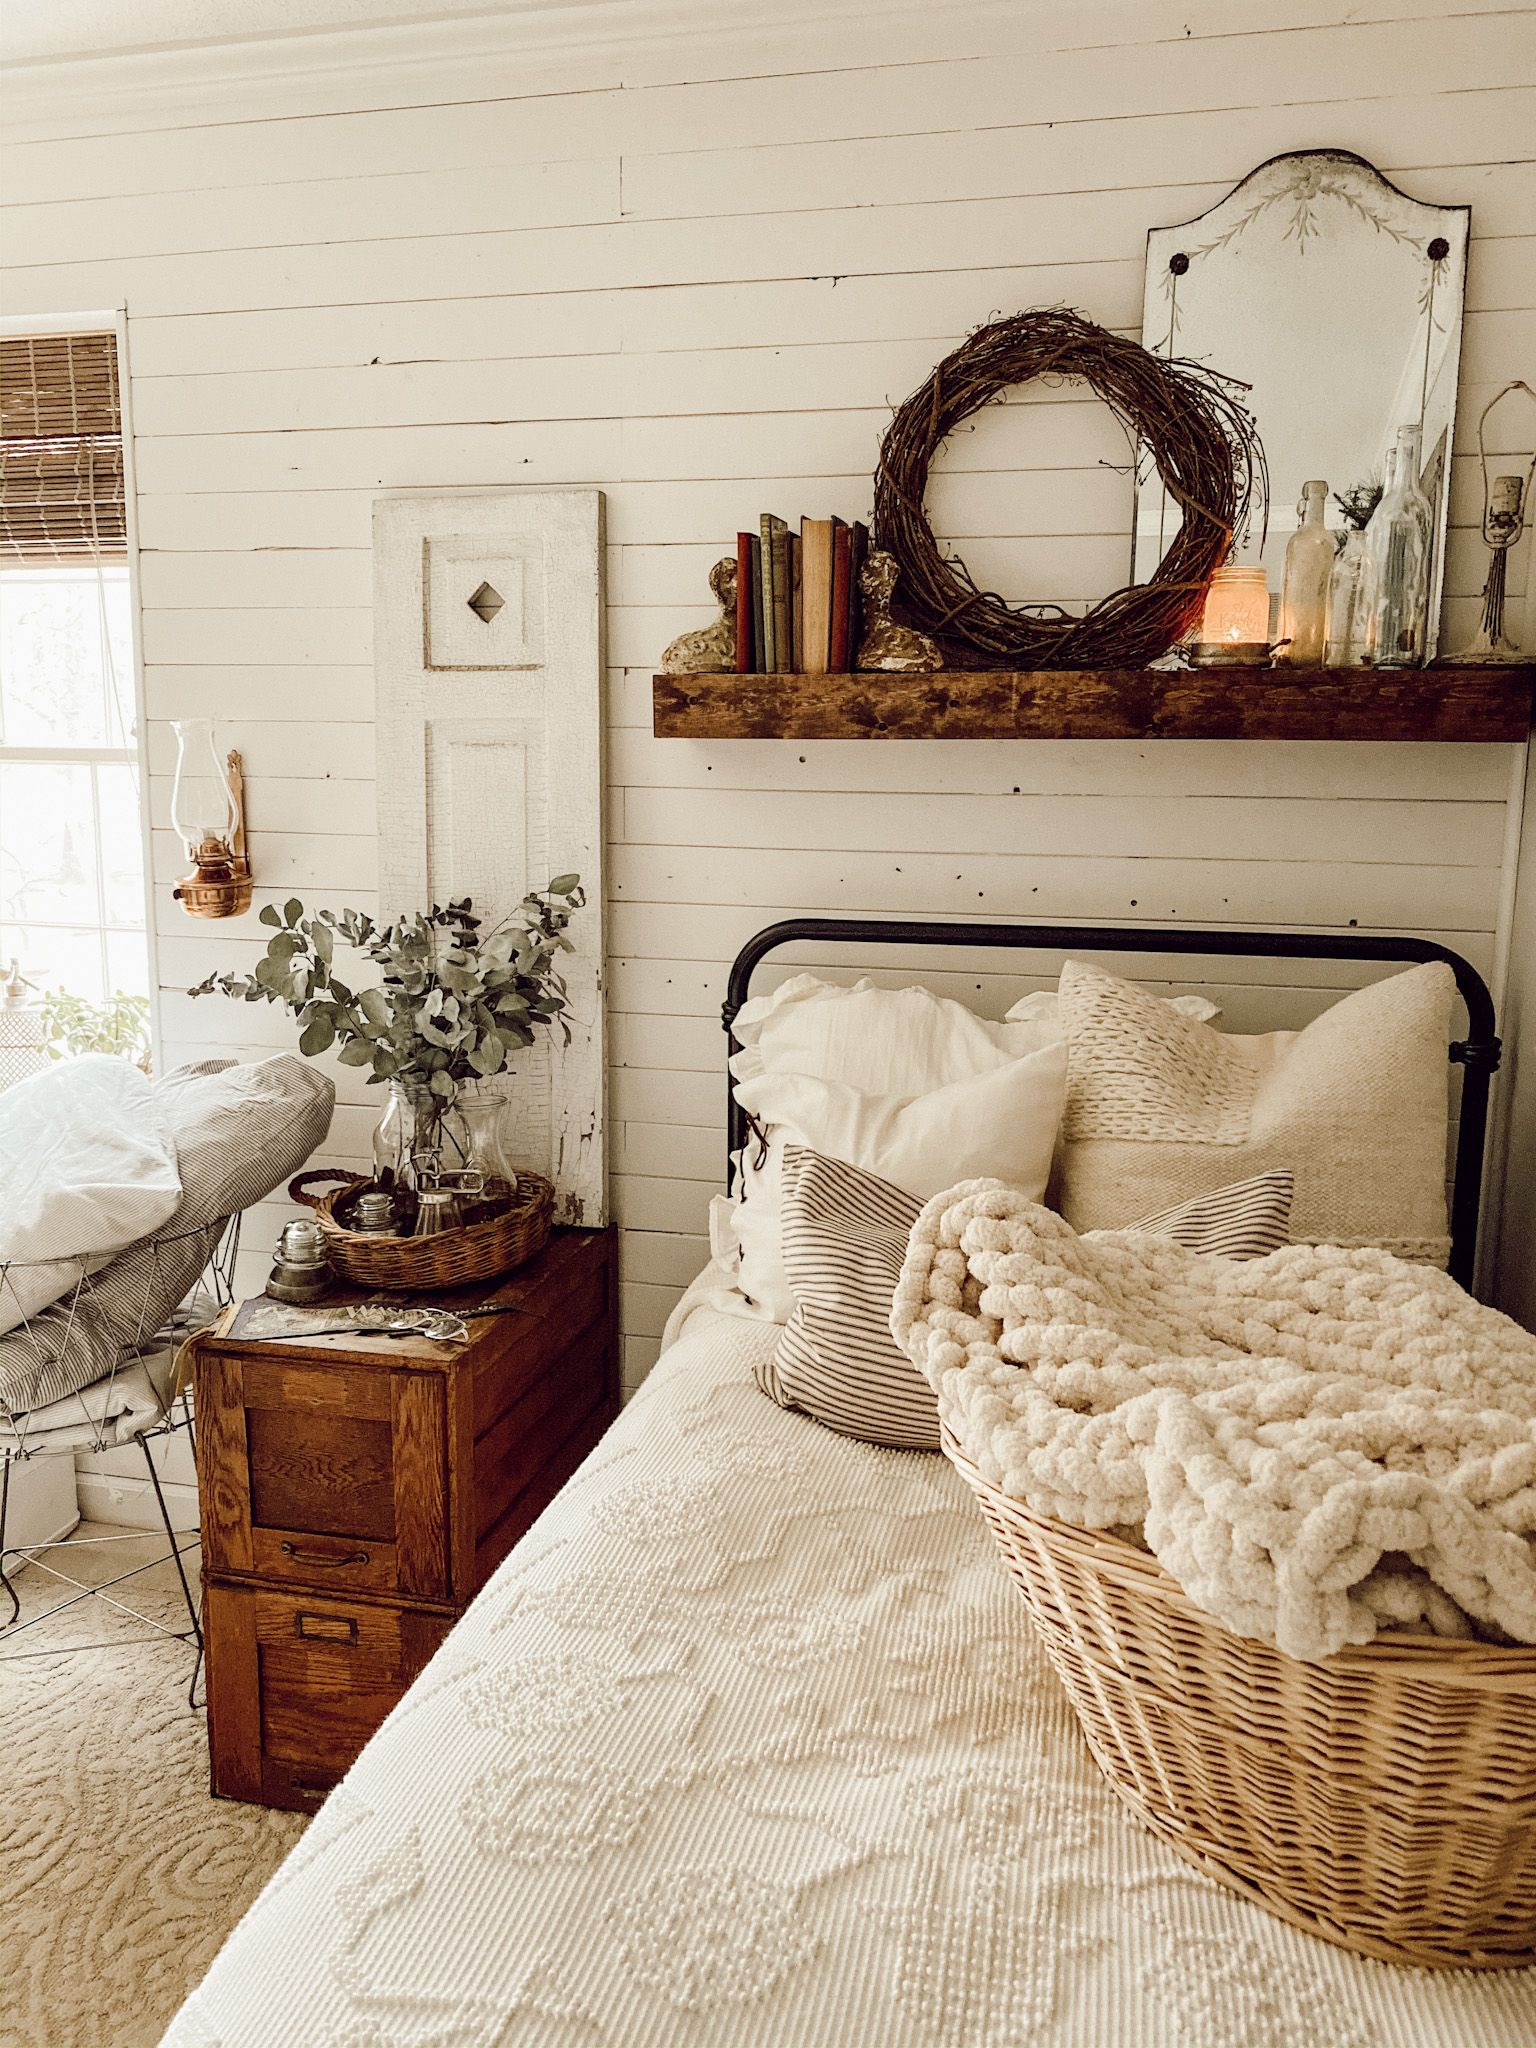 Farmhouse Bedroom In 2020 Winter Bedroom Decor Farmhouse Bedroom Decor Home Decor